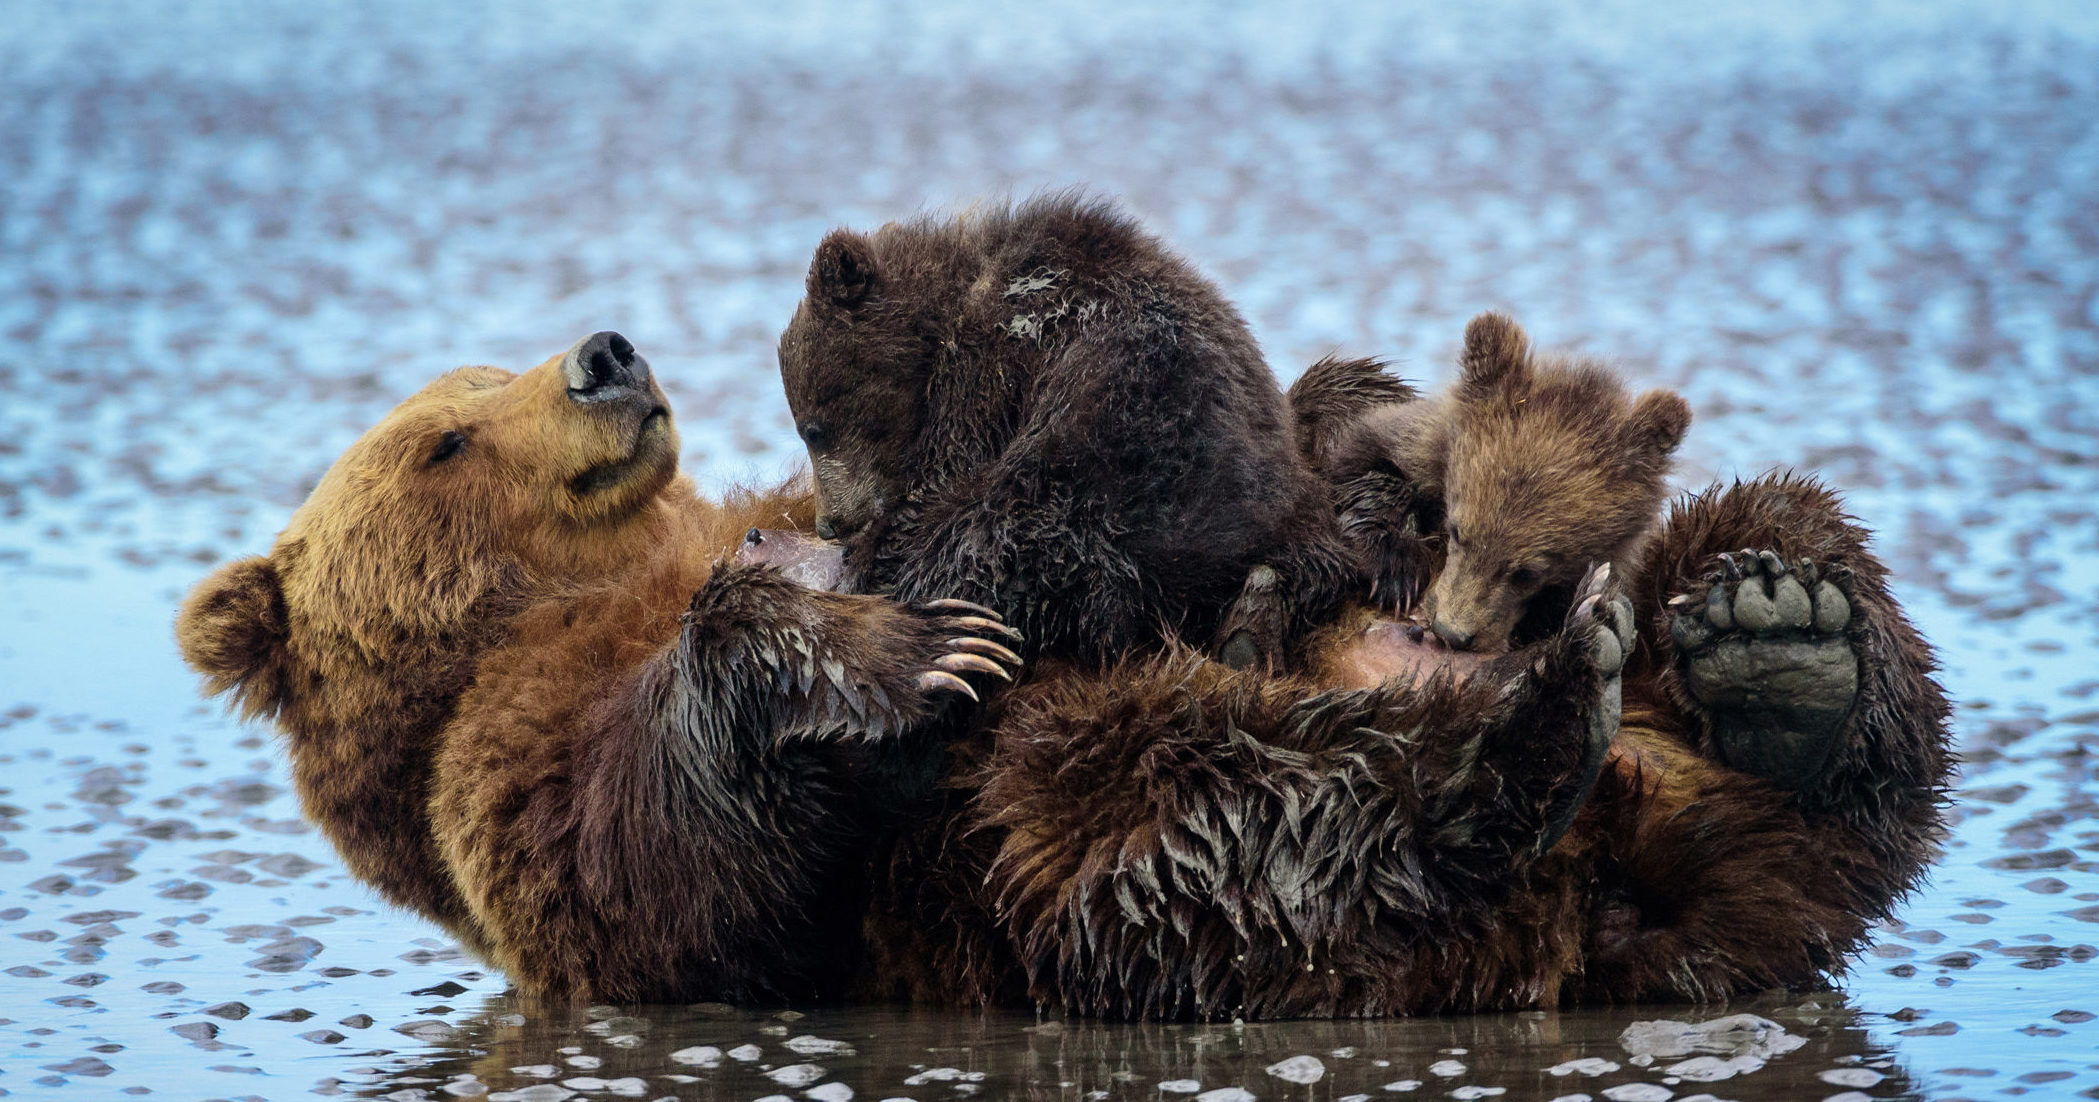 Brown bear (Ursus arctos) and cubs in Cook Inlet, Lake Clark National Park, Alaska, United States.